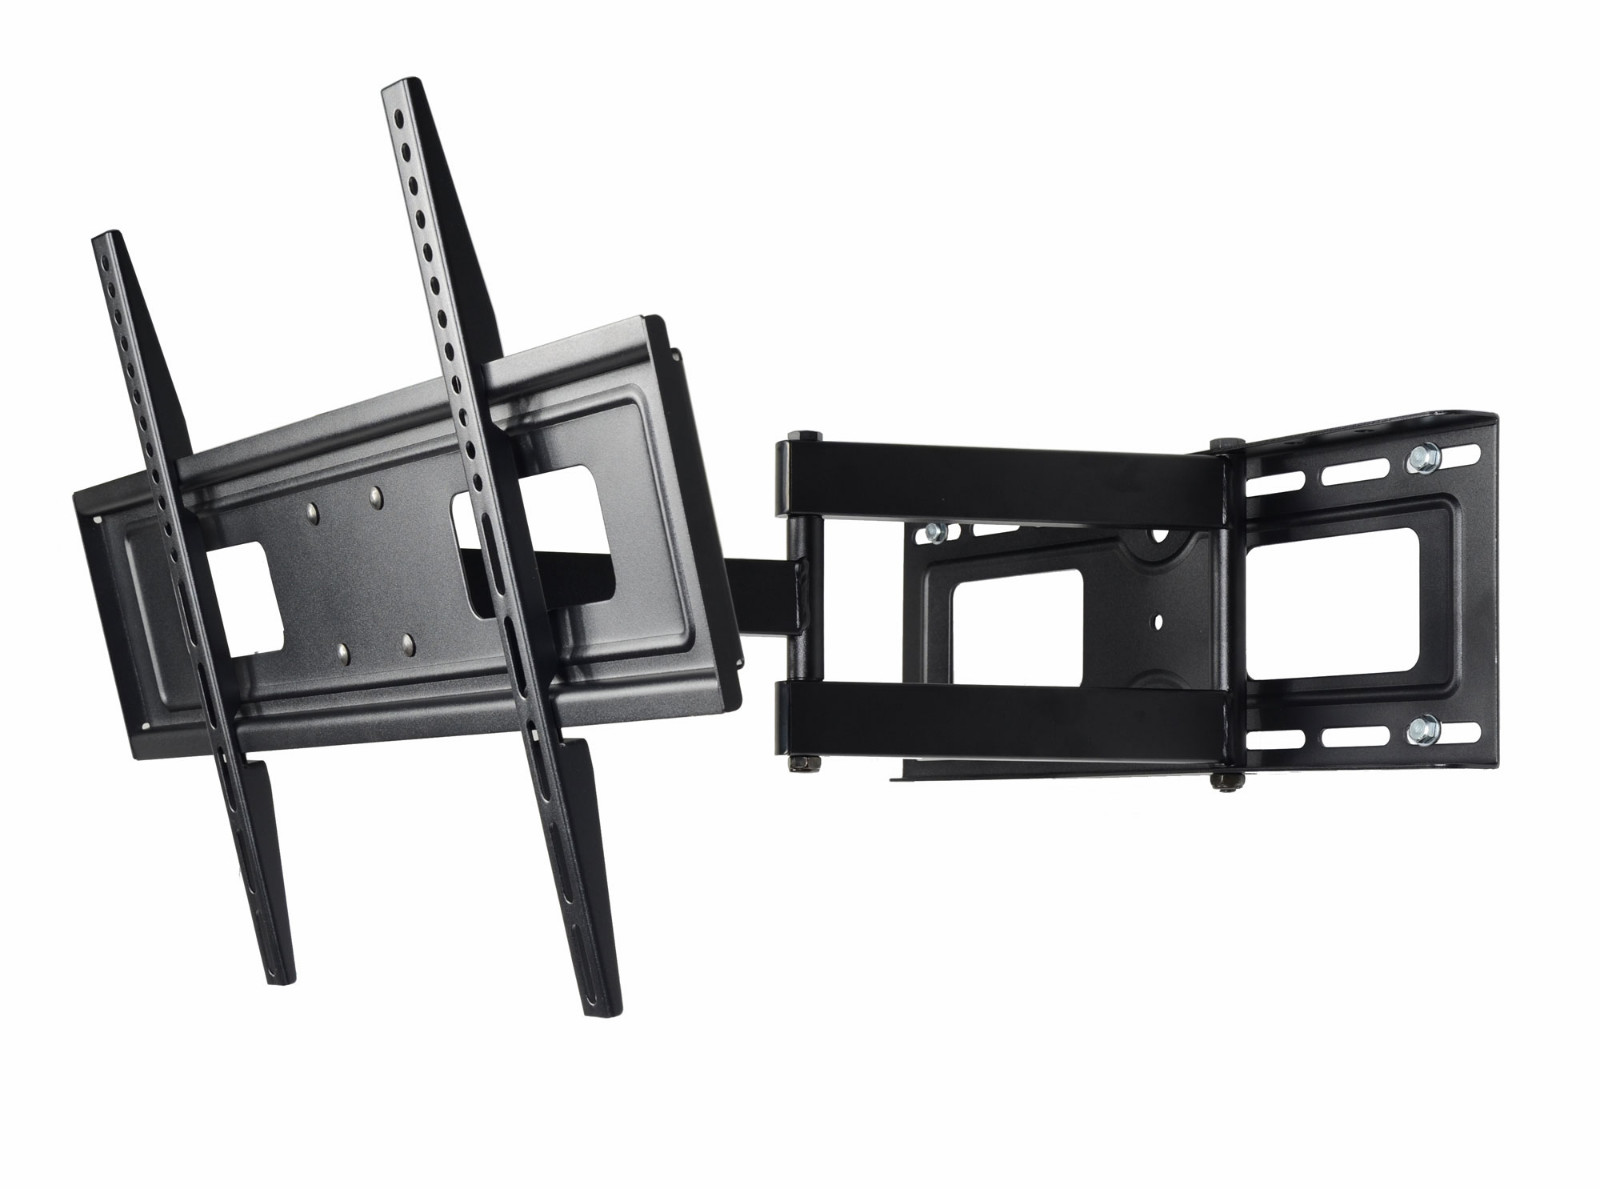 sony tv model kdl60r510a. videosecu articulating tv wall mount for 32 40 46 50 55 60\ sony tv model kdl60r510a